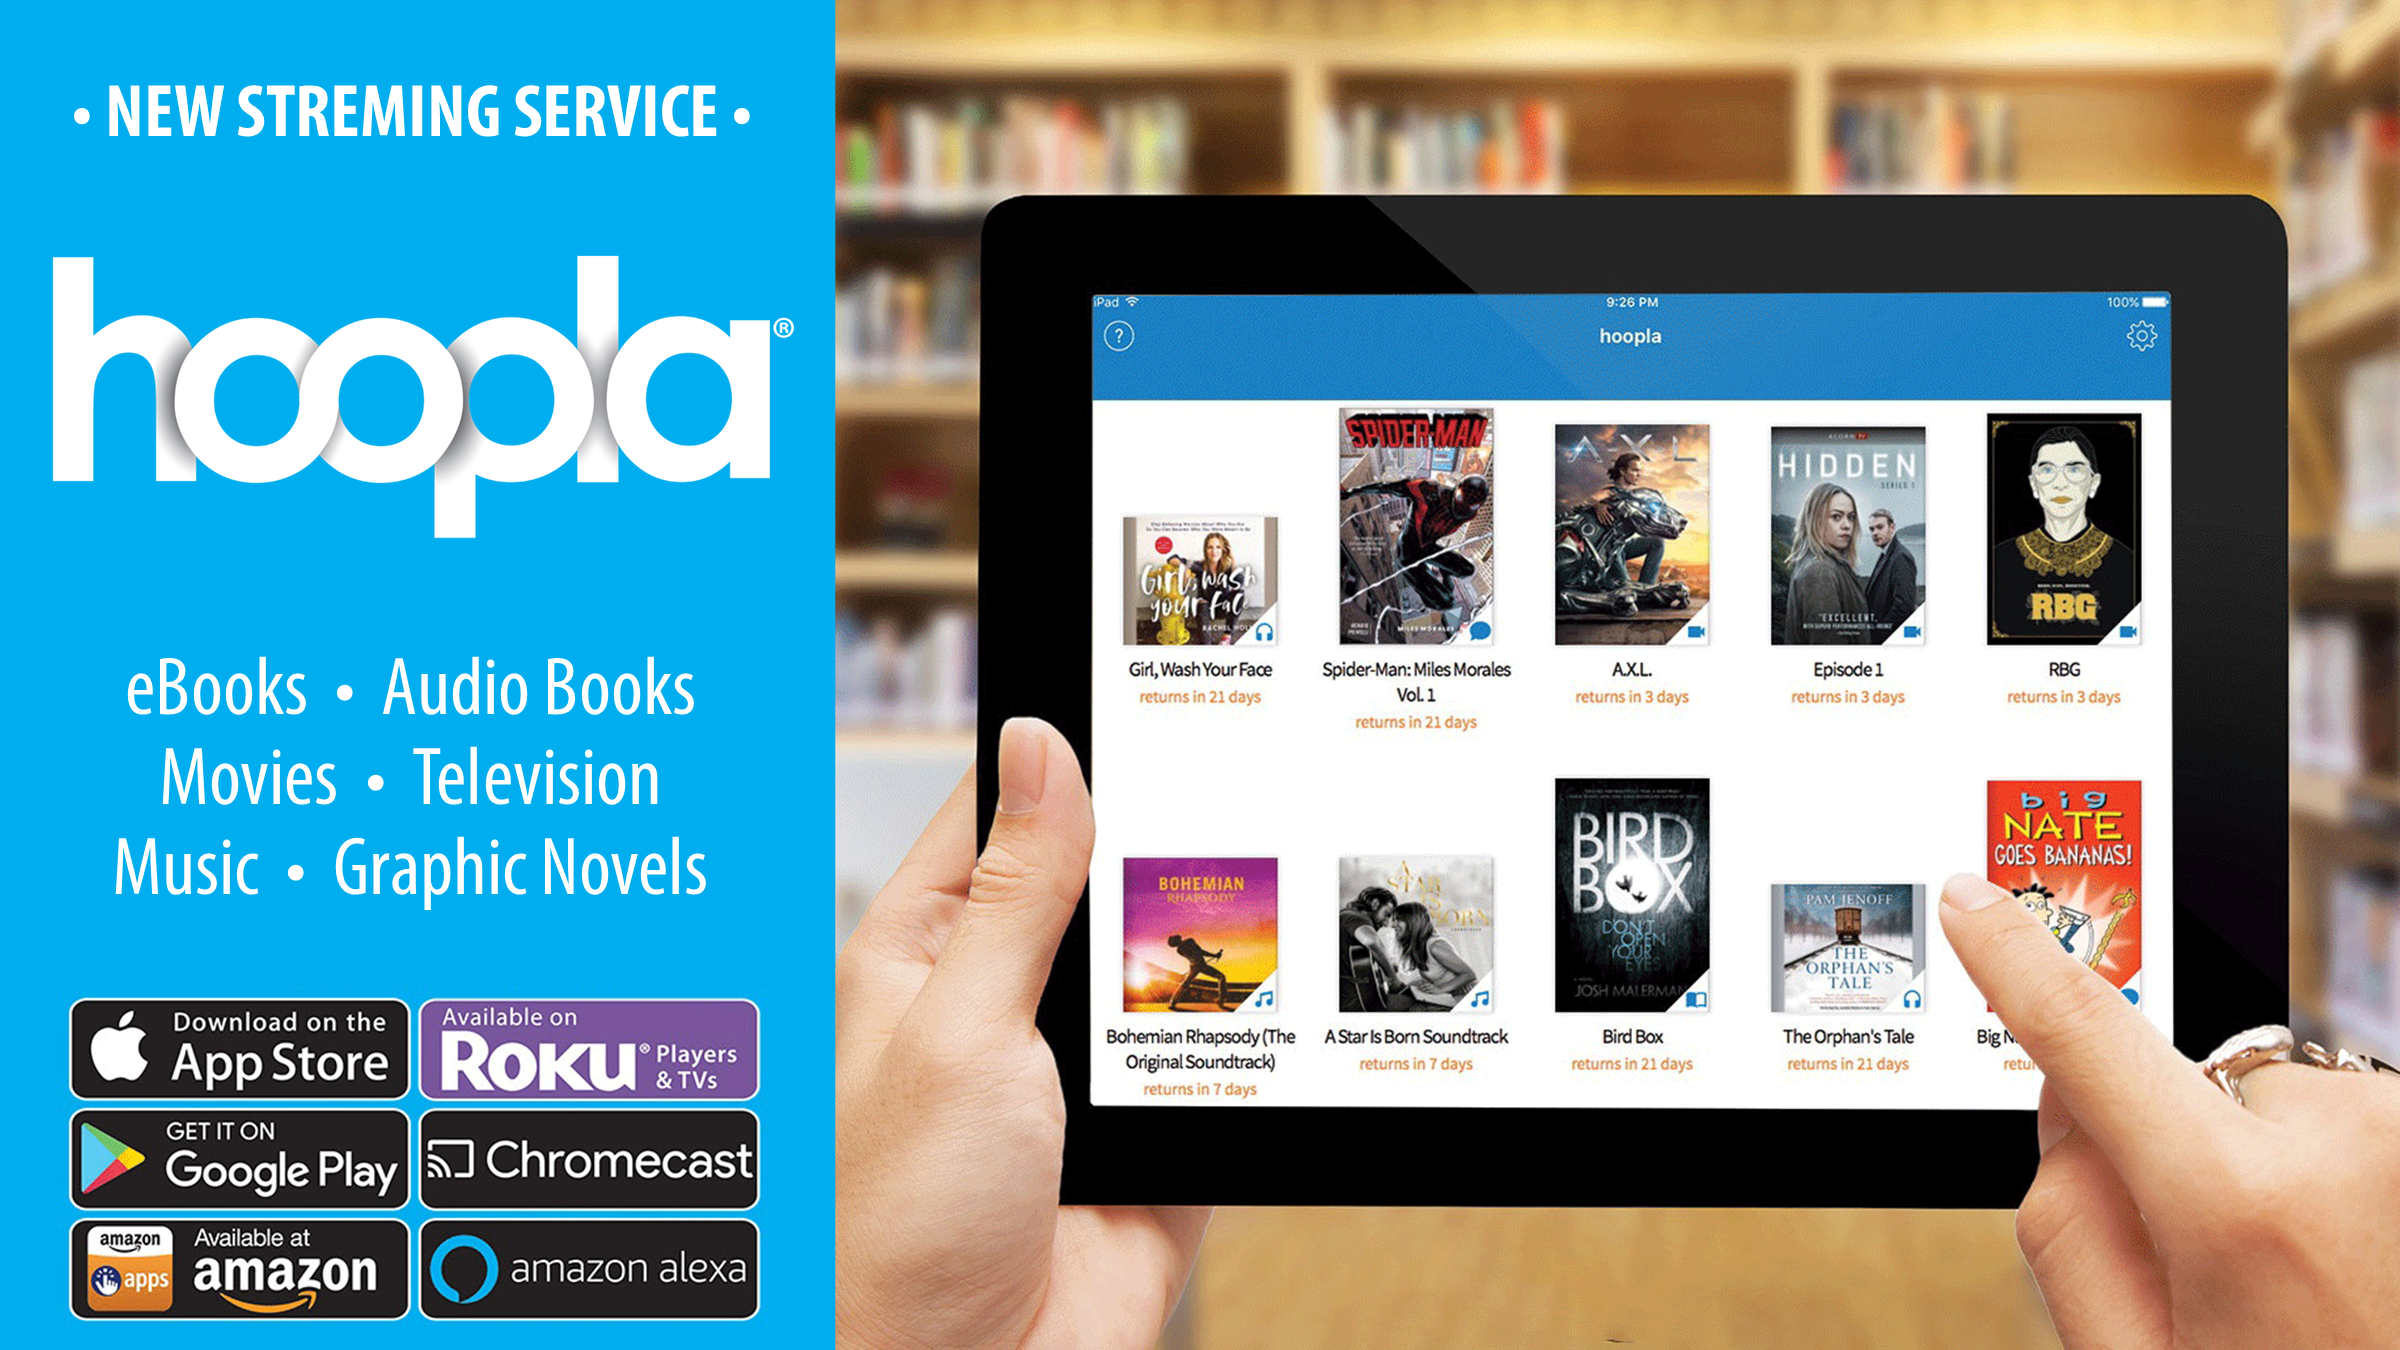 Hoopla - New Streaming Service